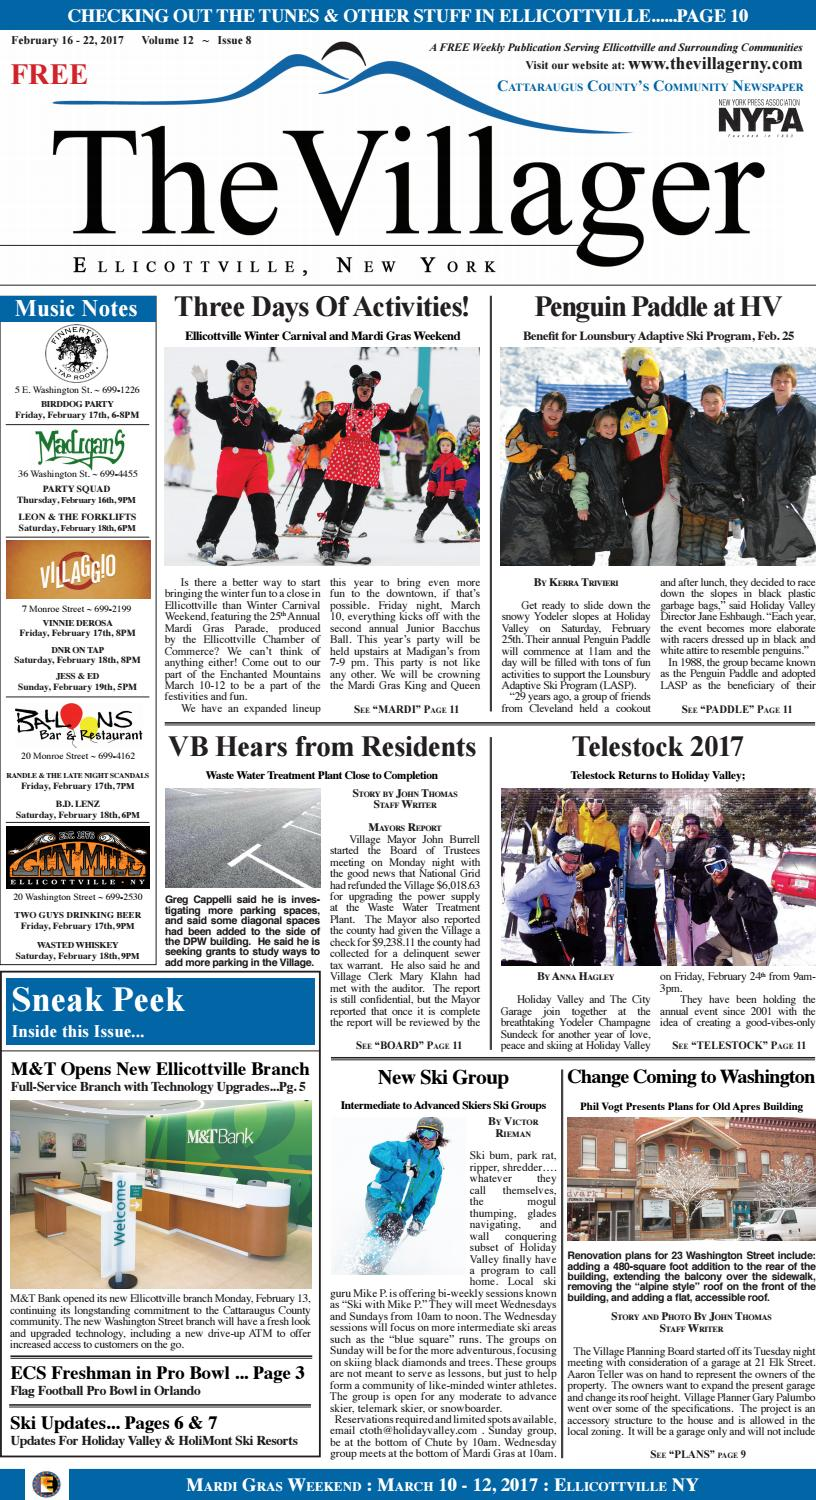 The villager ellicottville february 16 22, 2017 volume 12 issue 8 by ...